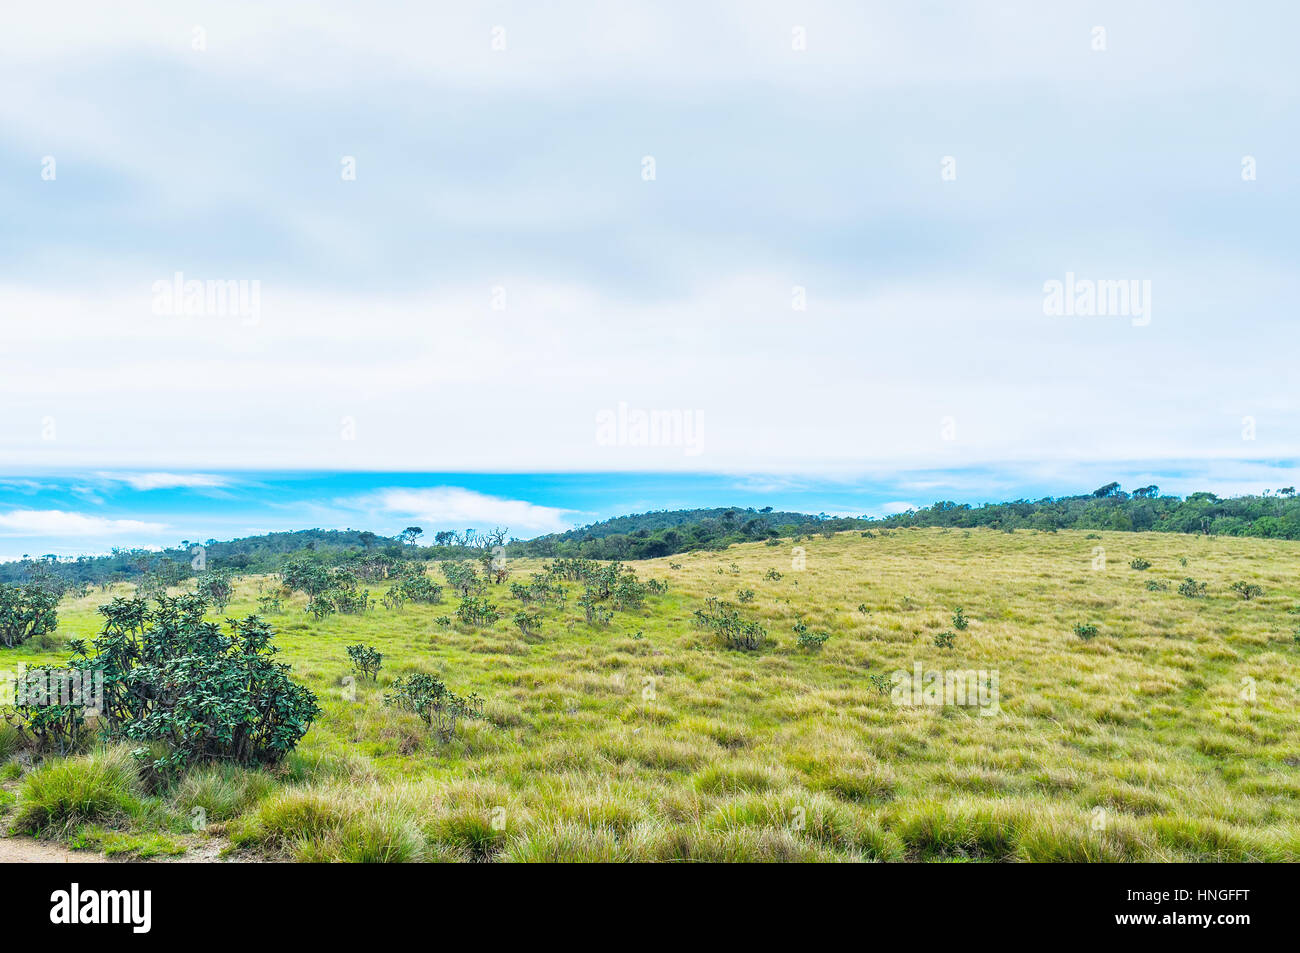 Almost third of territory of Horton Plains Park is grass covered with  rhododendron bushes, Sri Lanka - Stock Image